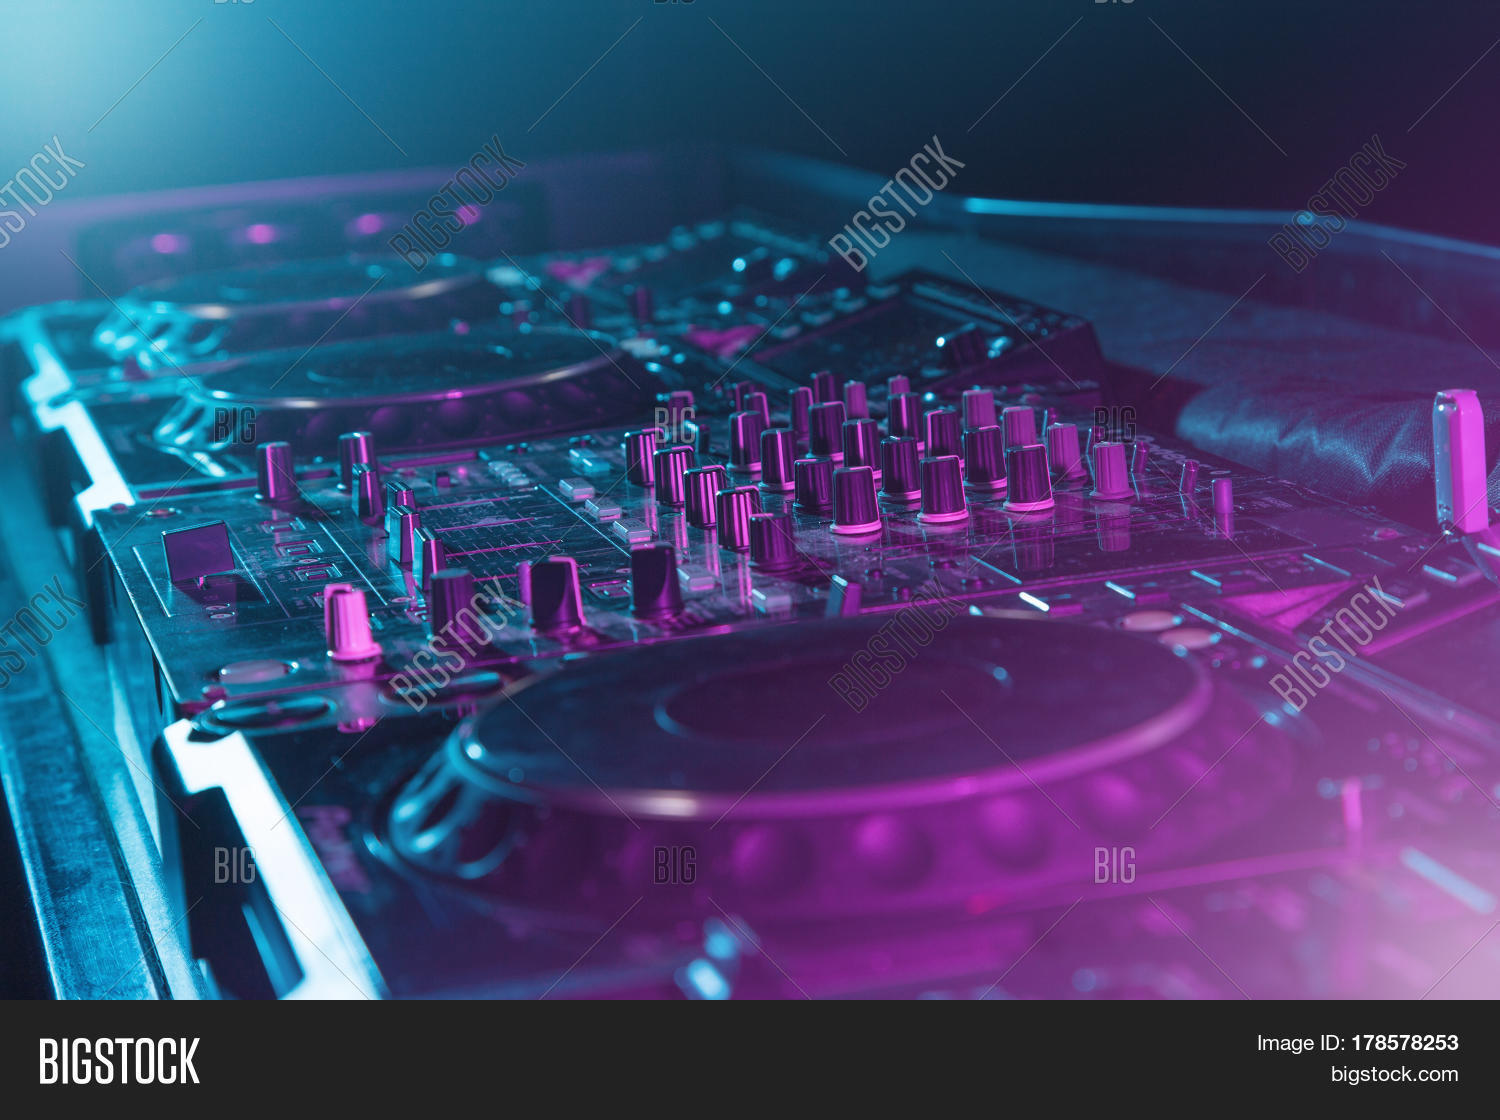 Dj sound equipment nightclubs music image photo bigstock for House music events